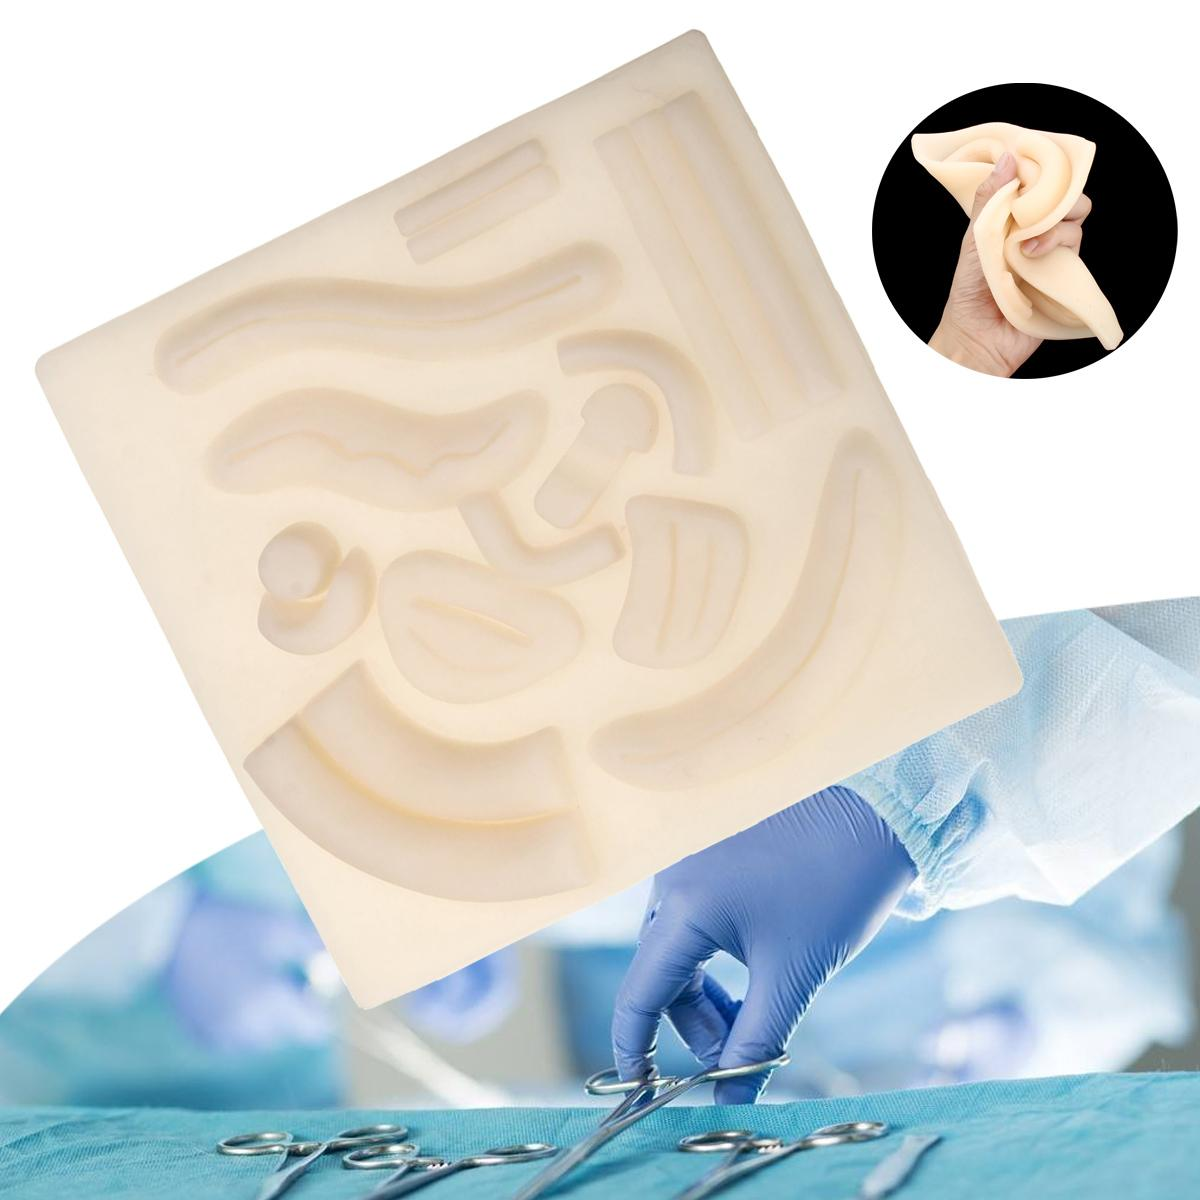 item image  Medical Suture Package 3D Silicone Laparoscopic Pores and skin Suture Pad Mannequin Set Wound Surgical Coaching Package for Pupil Observe HLB1rqFvbEvrK1RjSspcq6zzSXXak